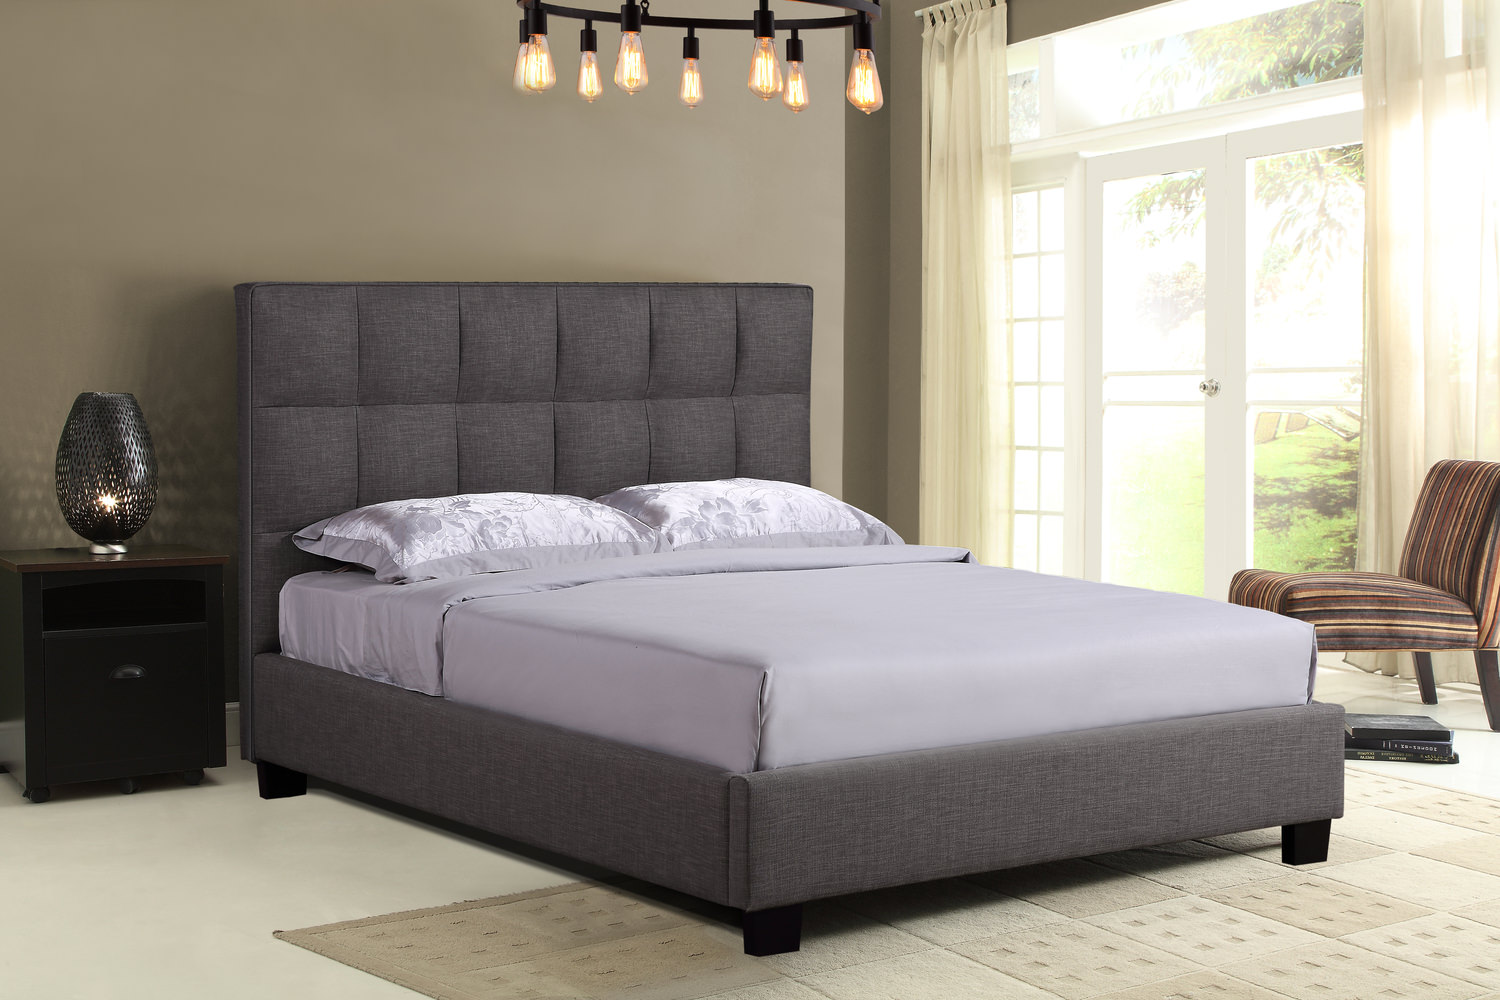 The Loft Queen Bed Grey